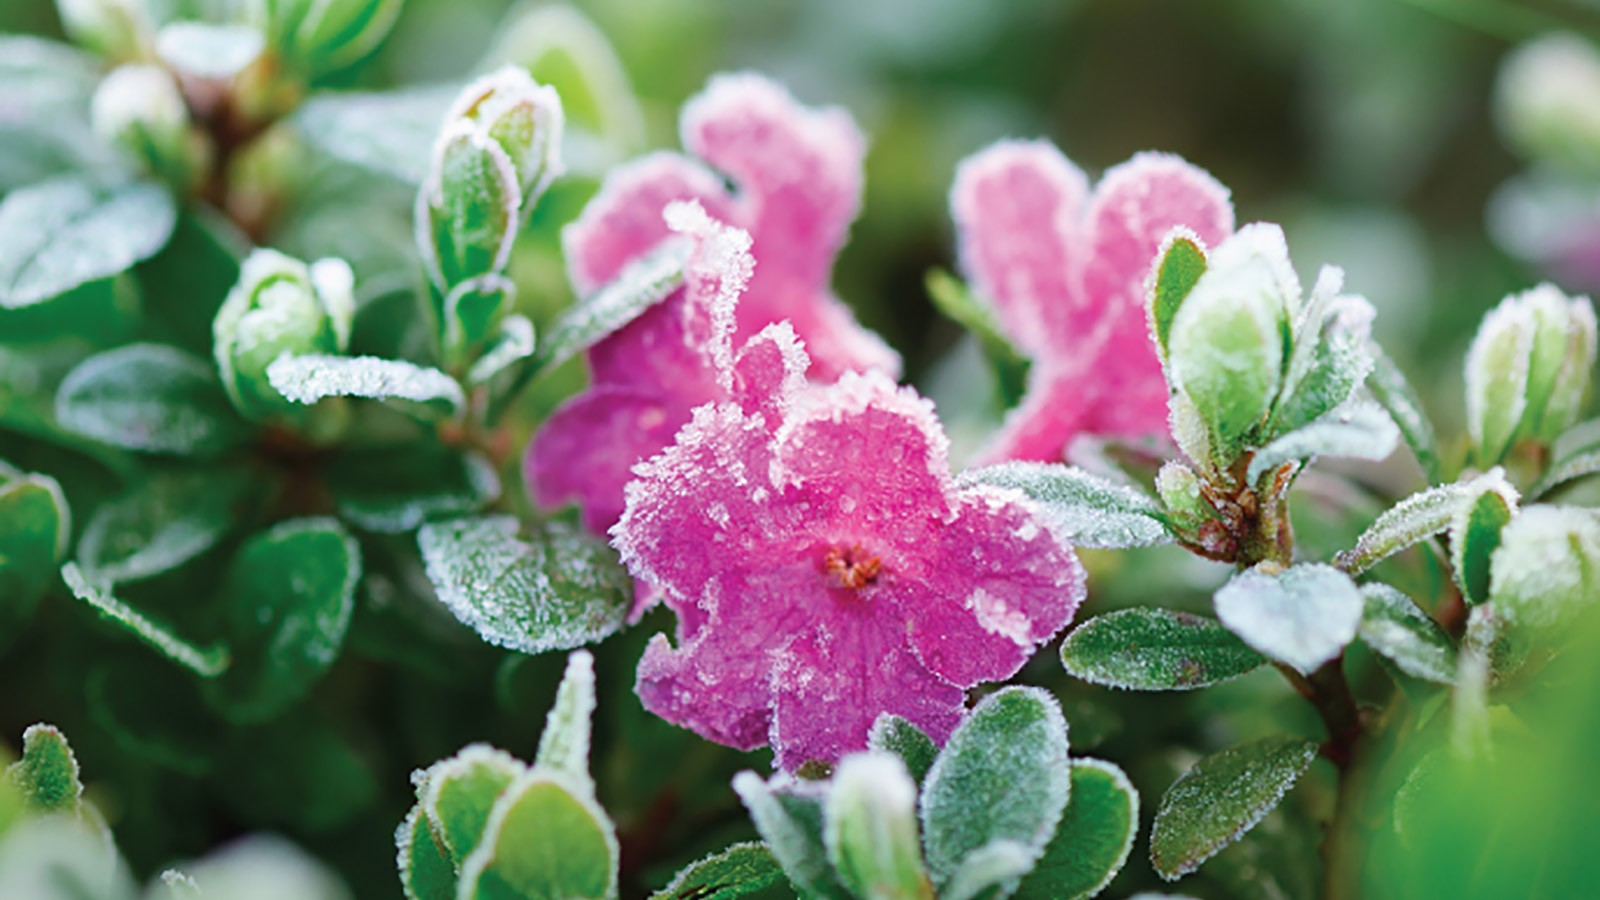 frost on flowers.